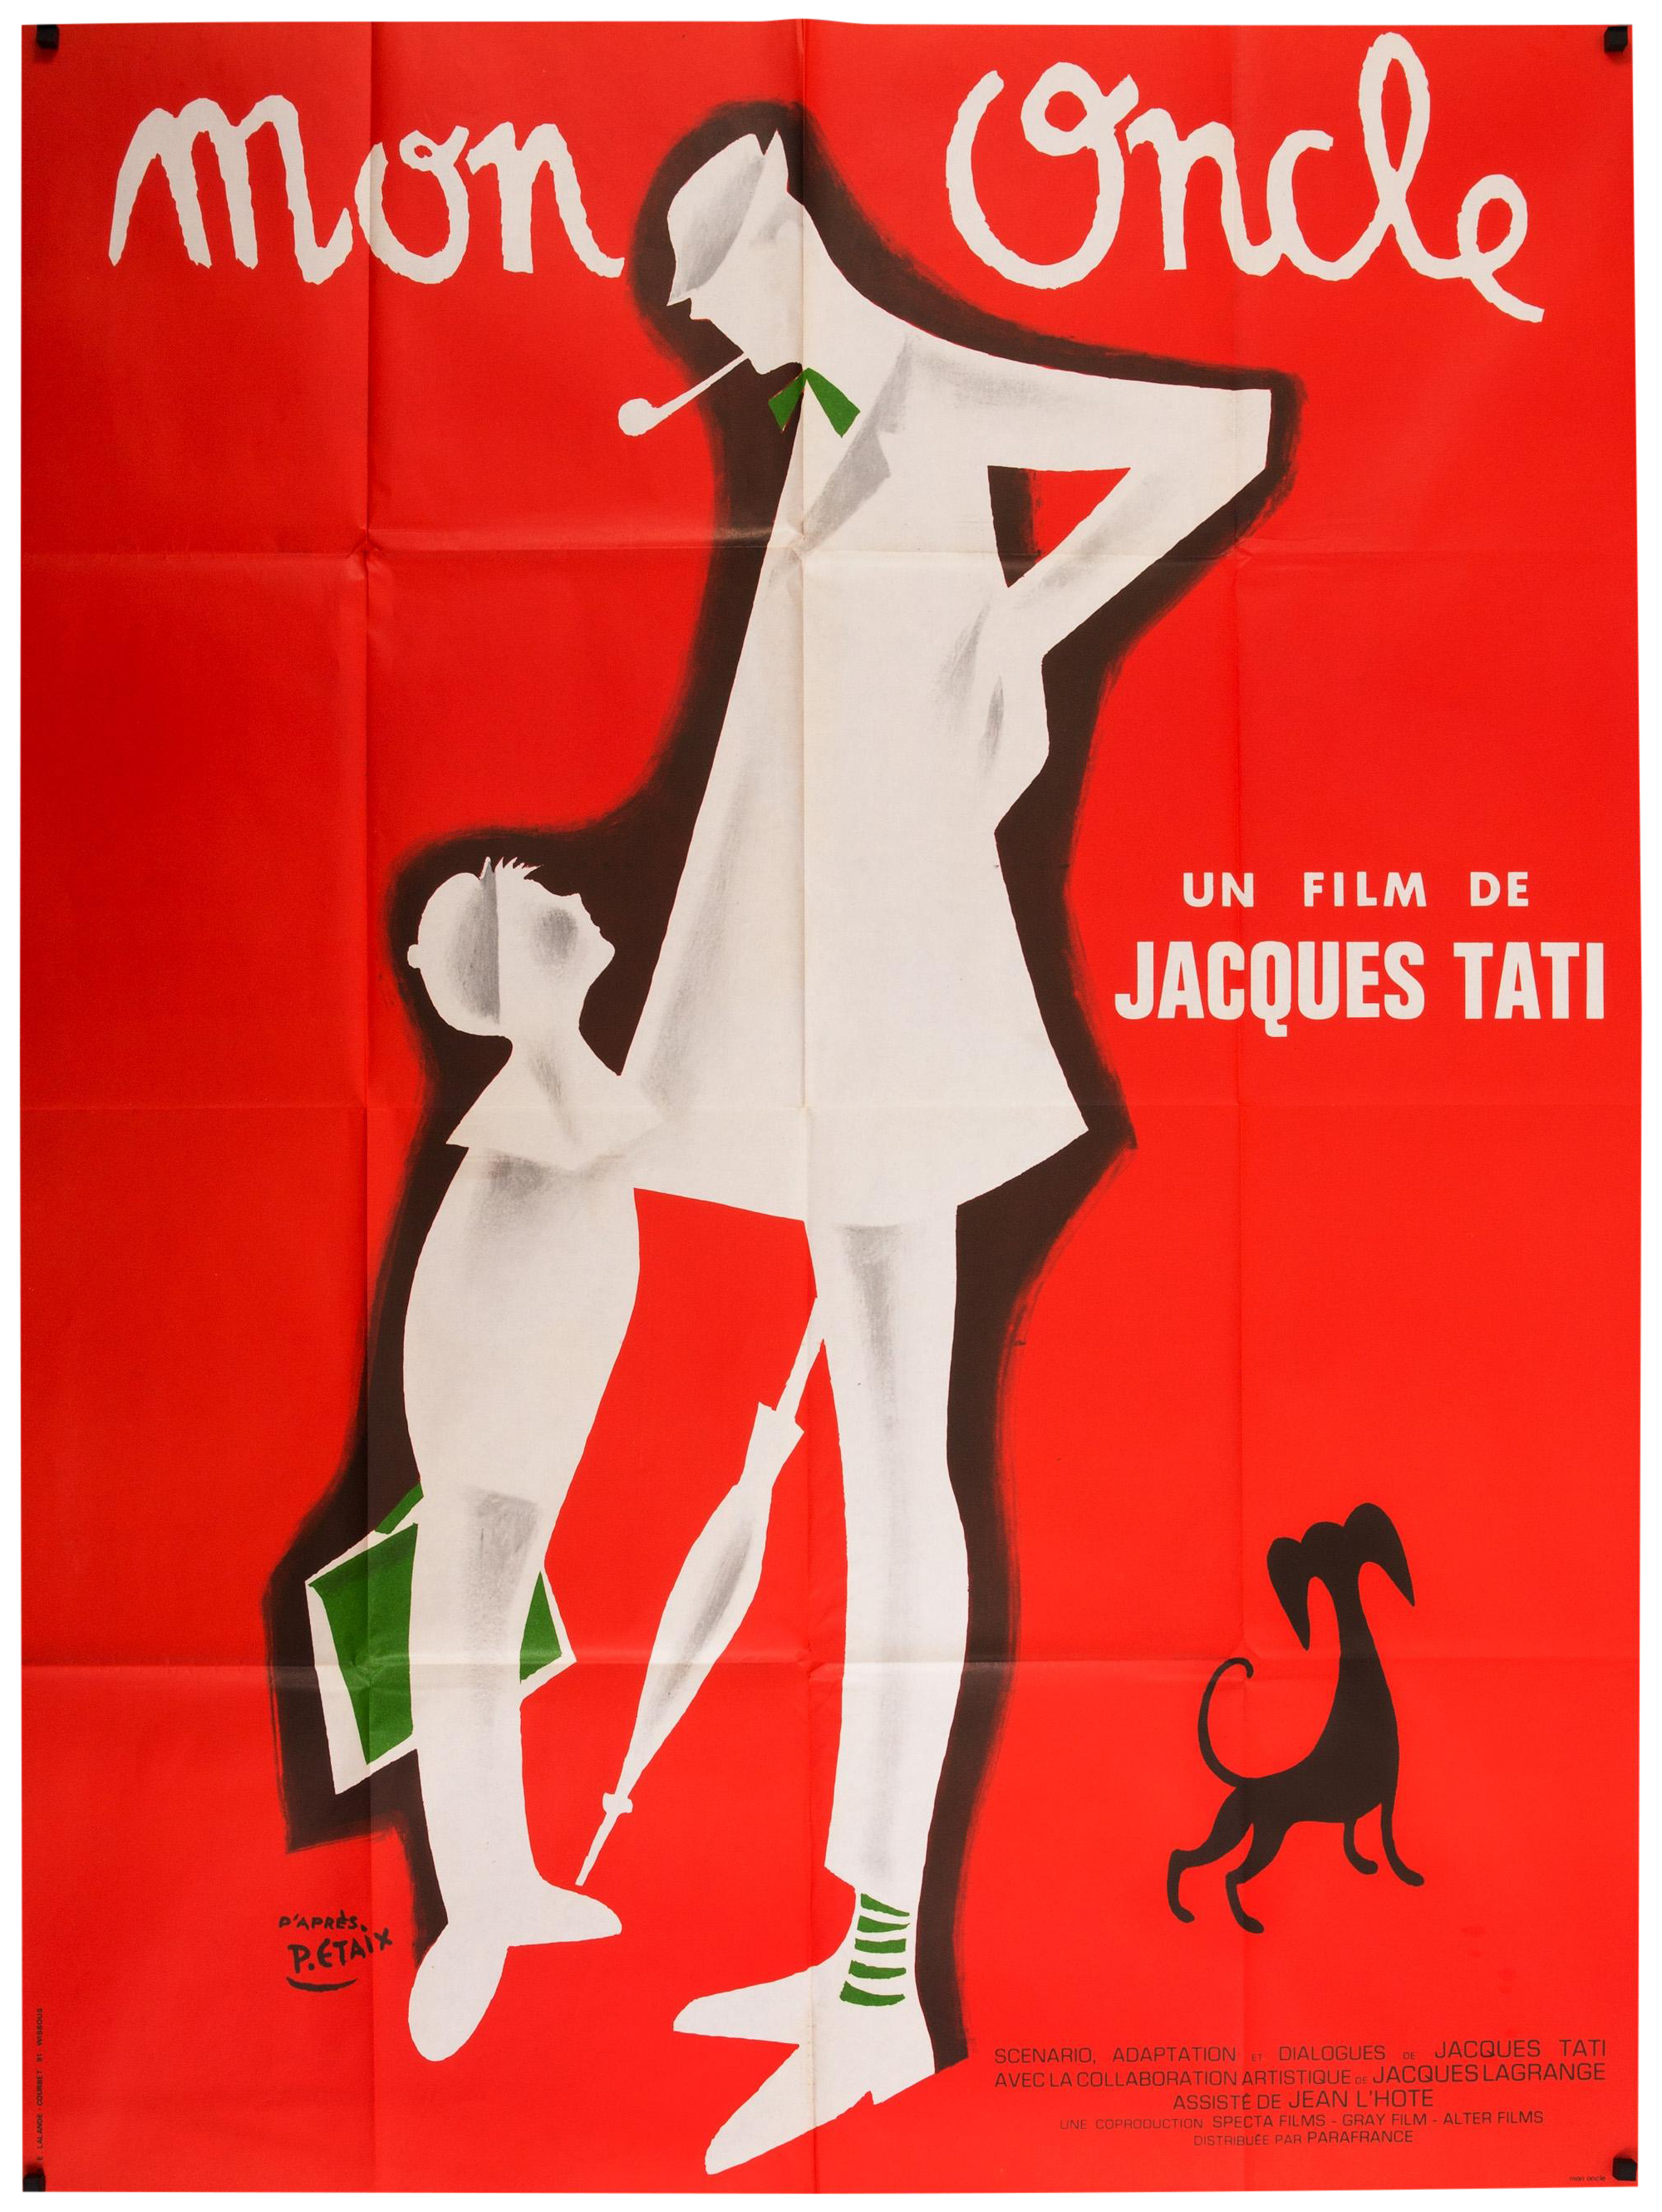 jacques tati 39 mon oncle 39 french film poster chairish. Black Bedroom Furniture Sets. Home Design Ideas